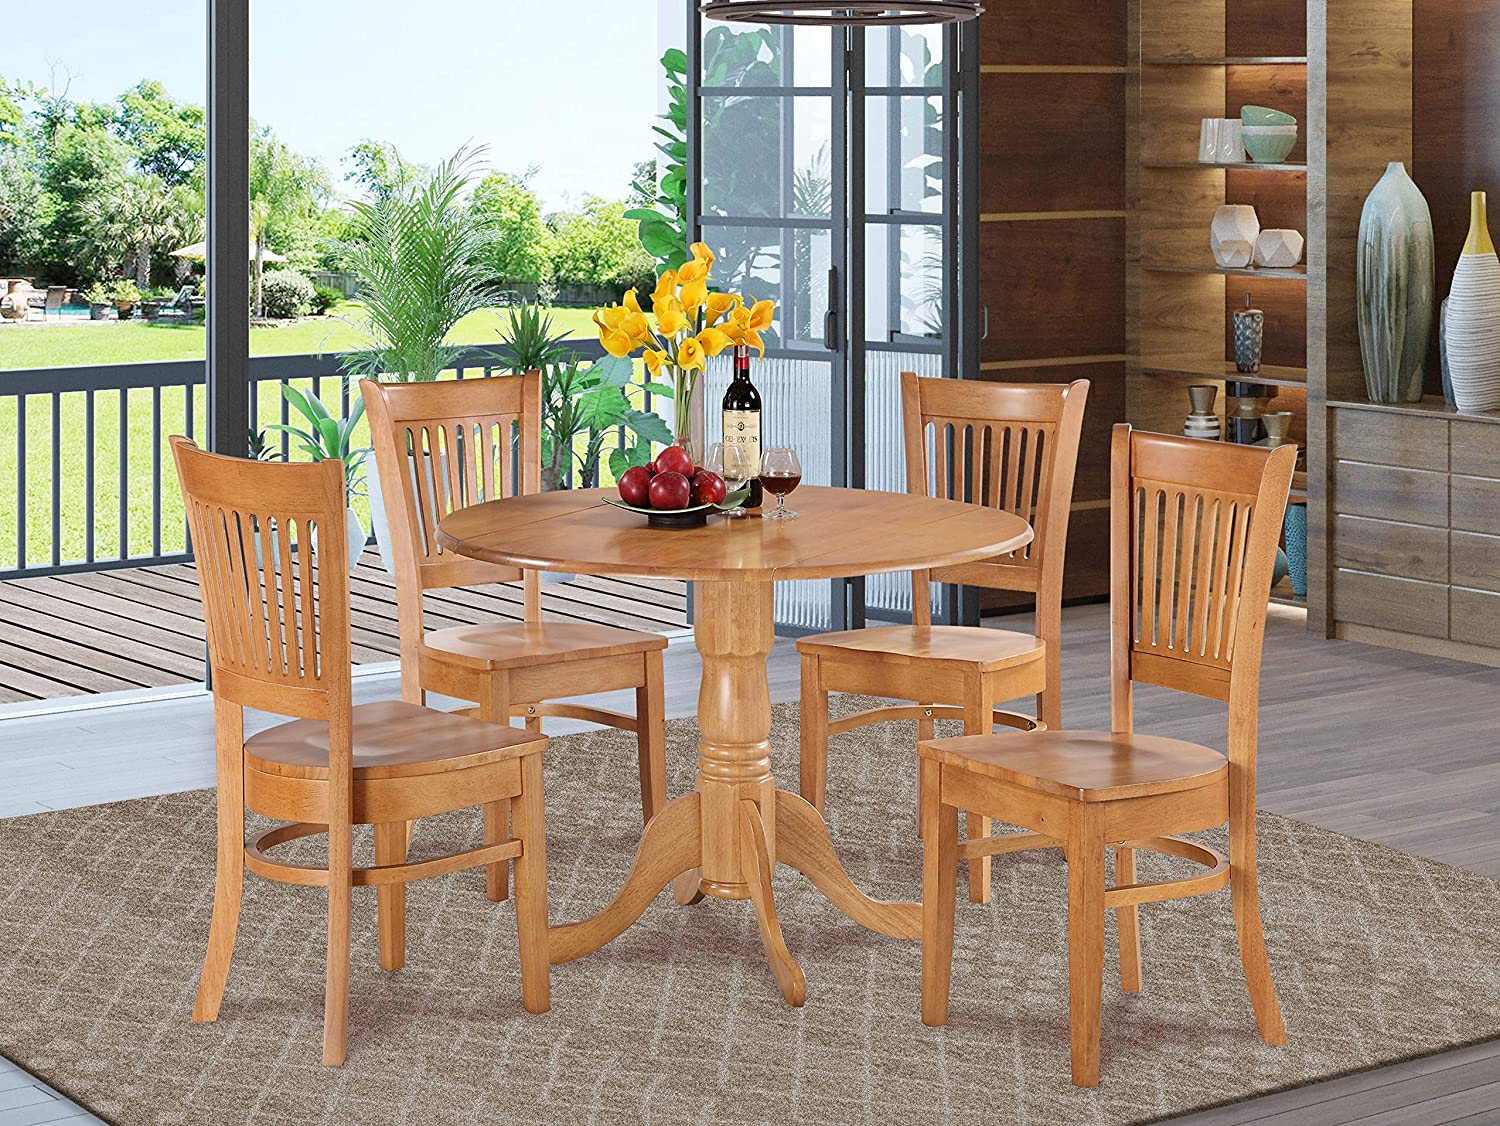 5 Pc Kitchen Nook Dining Set Round Table And 4 Dinette Chairs Chairs Table Chair Sets